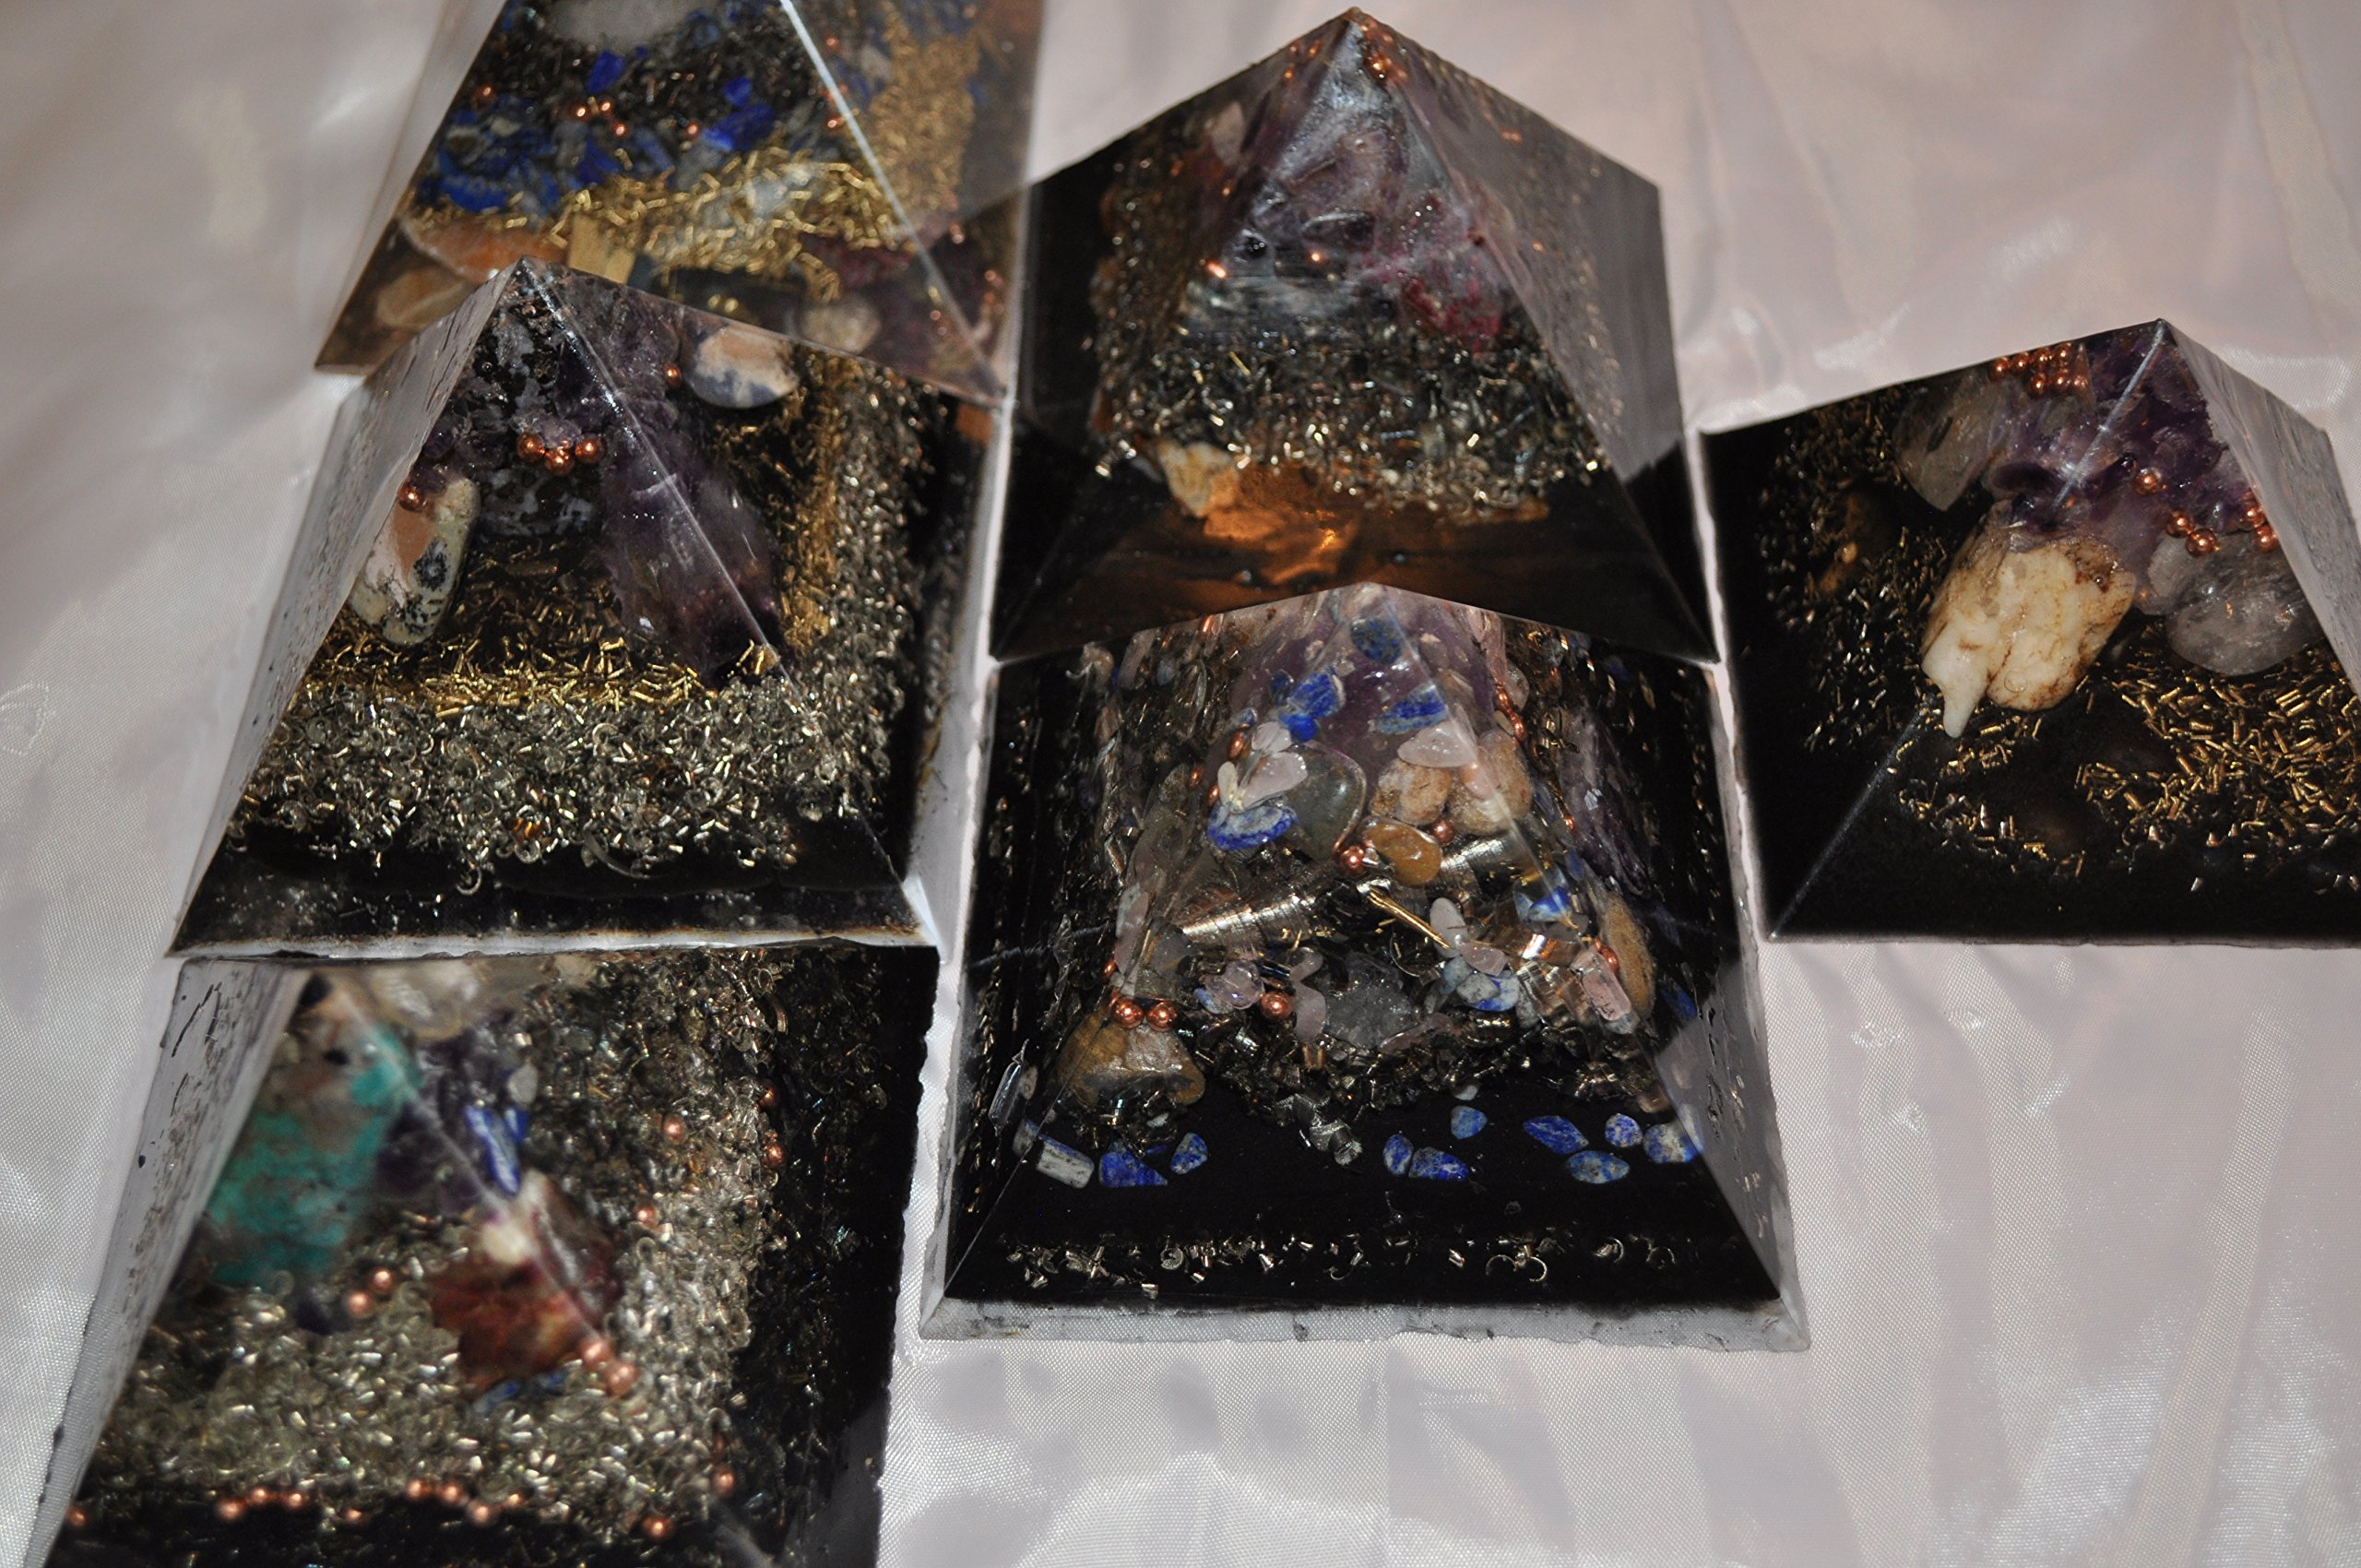 6 large multicolored aesthetic crystal Orgone energy pyramids for EMF protection headache relief collectibles home decoration improved sleep chakra balancing beautiful positive energy collectibles by KayJay Organite